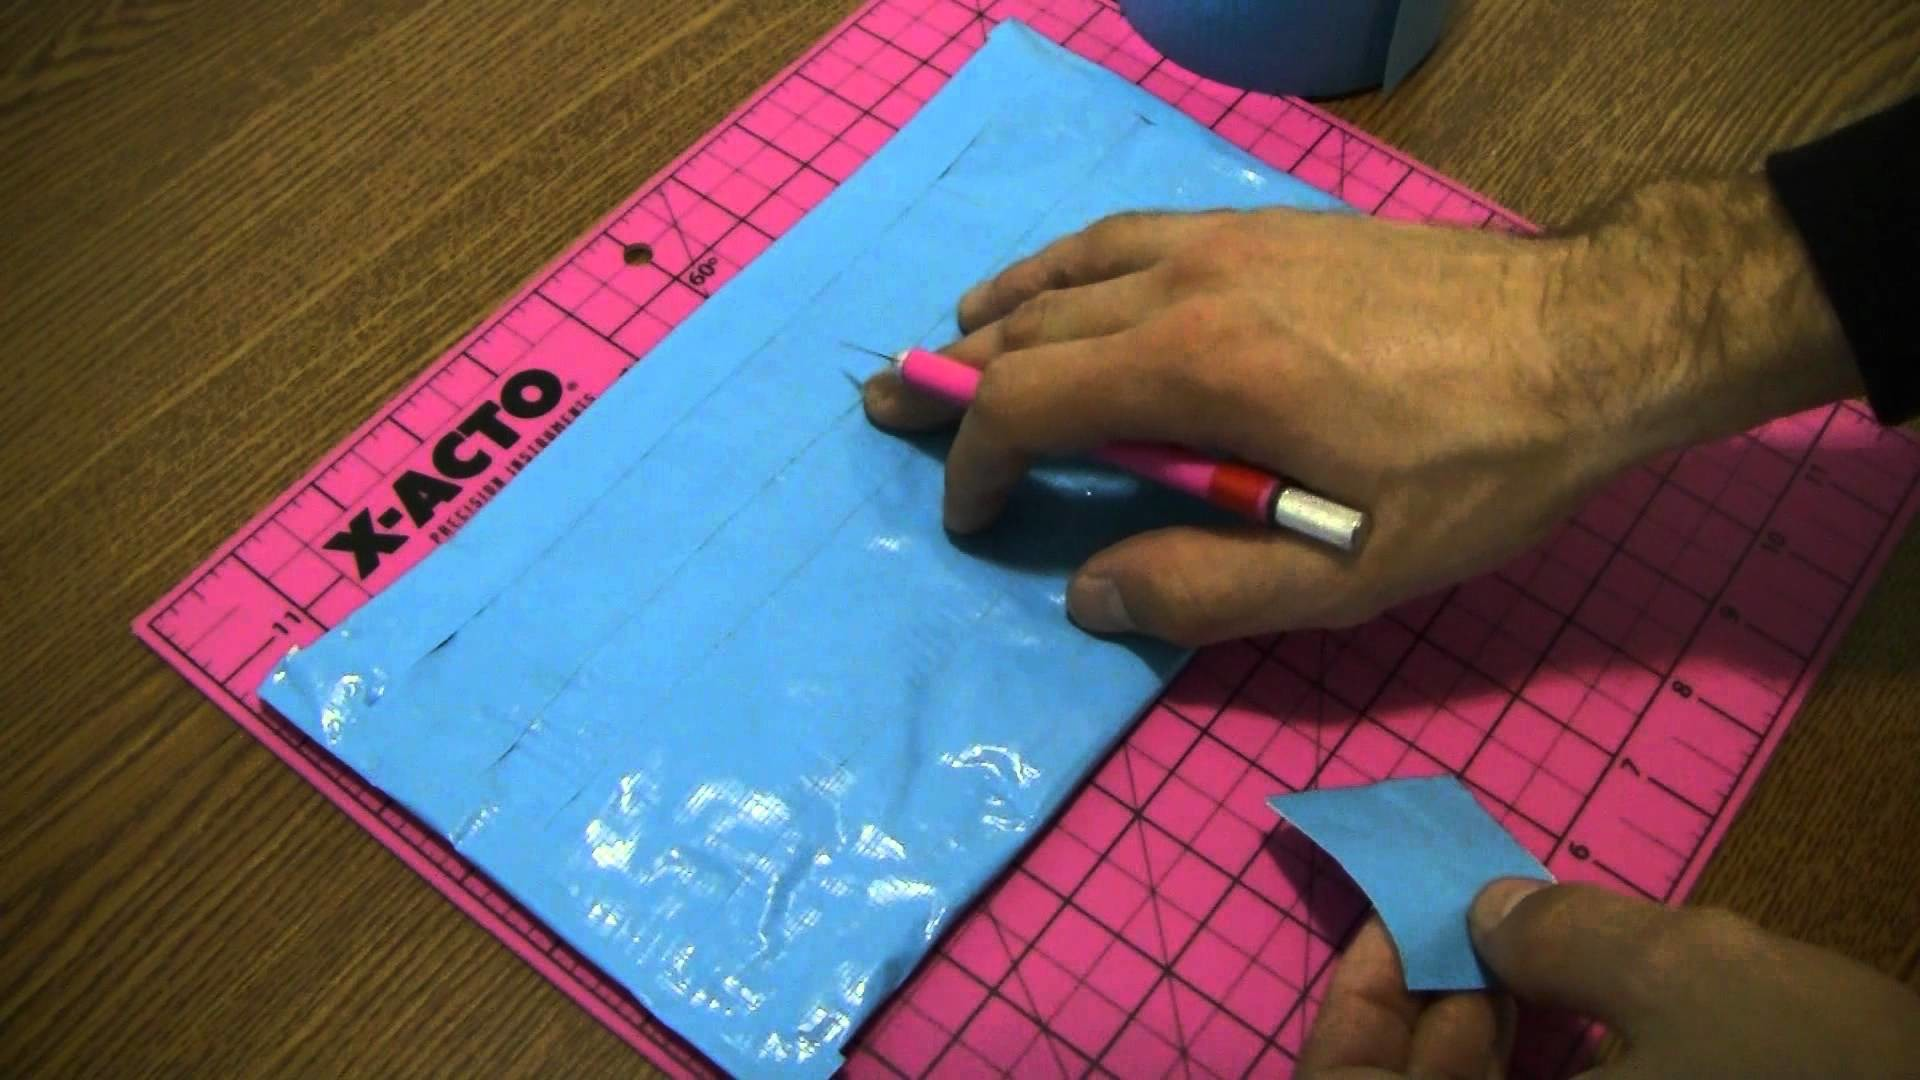 How to make a Duct tape hot pan holder